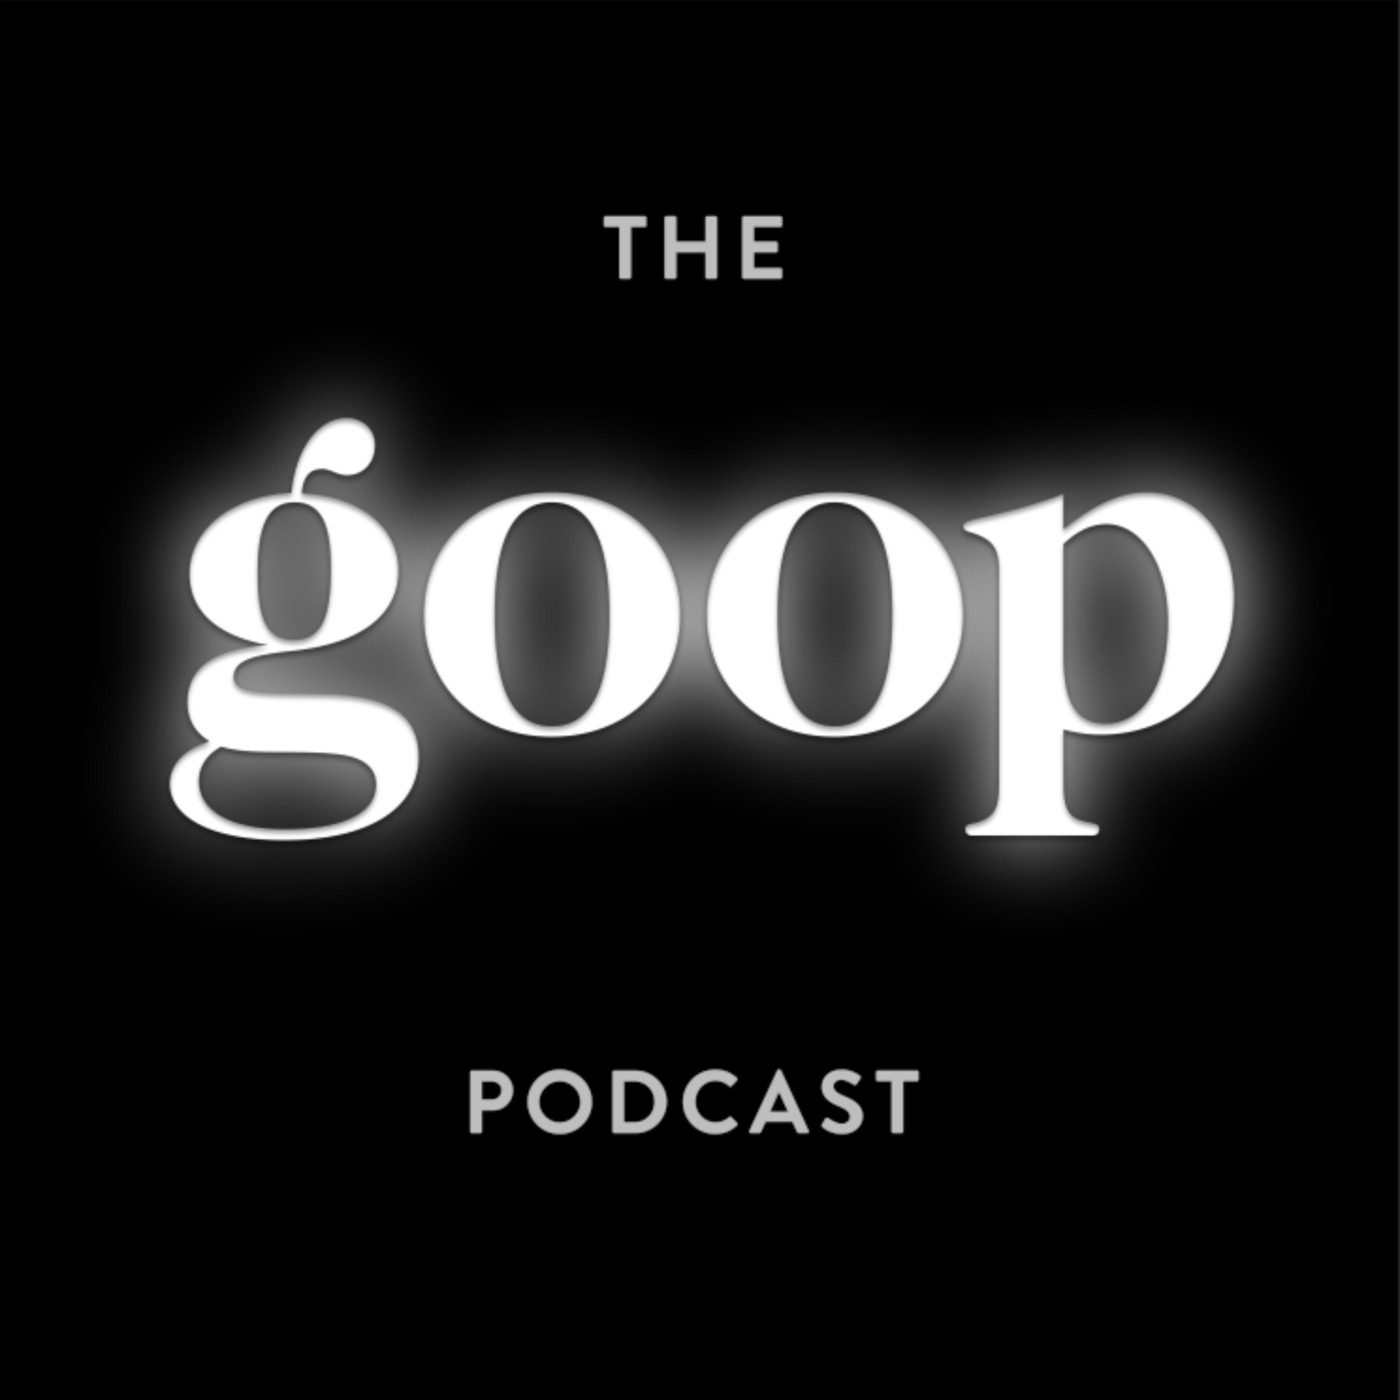 The Goop Podcast, Why Sex Therapists Don't Care About Orgasms - Another all-time favorite in our relationship that kick started a new chapter of intimacy in the house. (We don't have to talk about it Mom.)